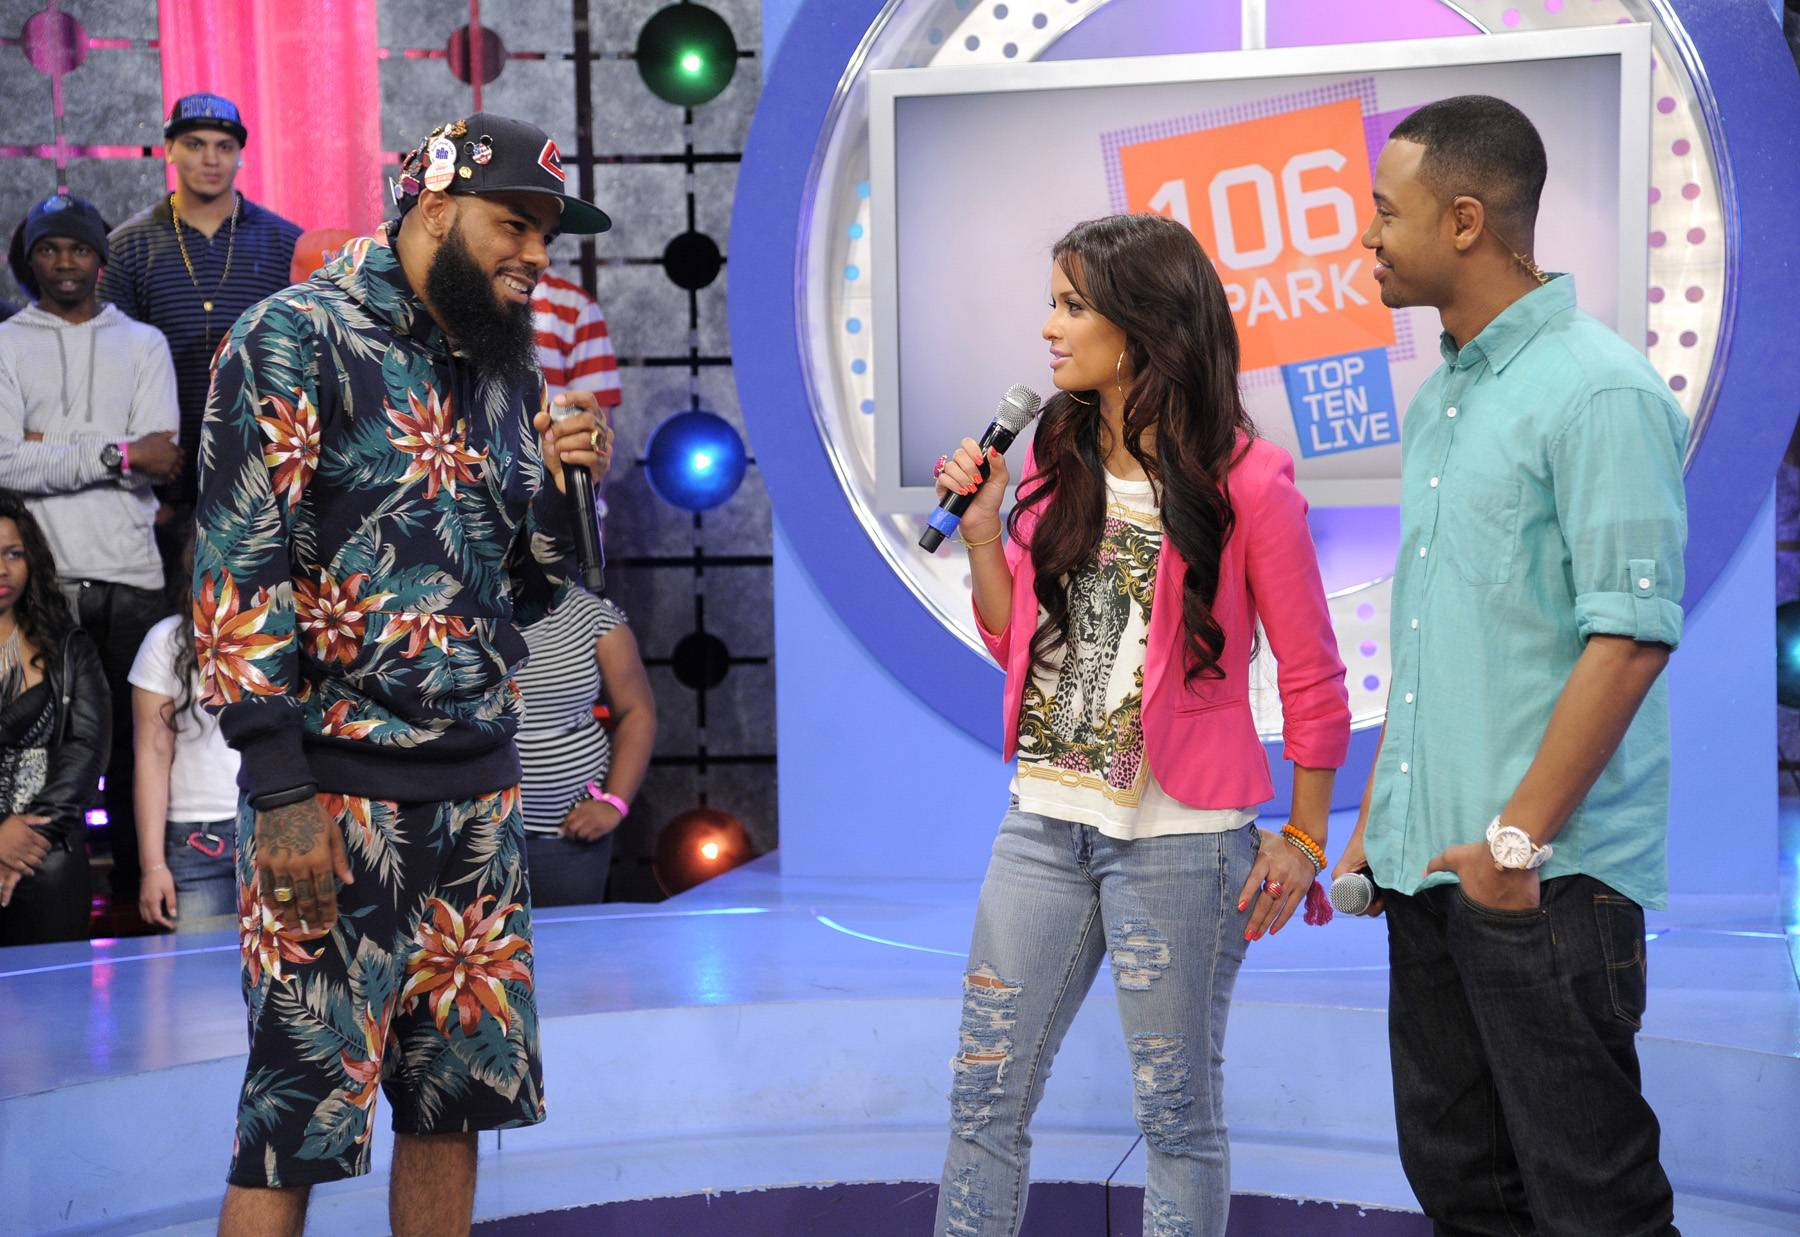 Fireworks - Stalley of MMG with Rocsi Diaz and Terrence J at 106 & Park, April 17, 2012. (Photo: John Ricard/BET)